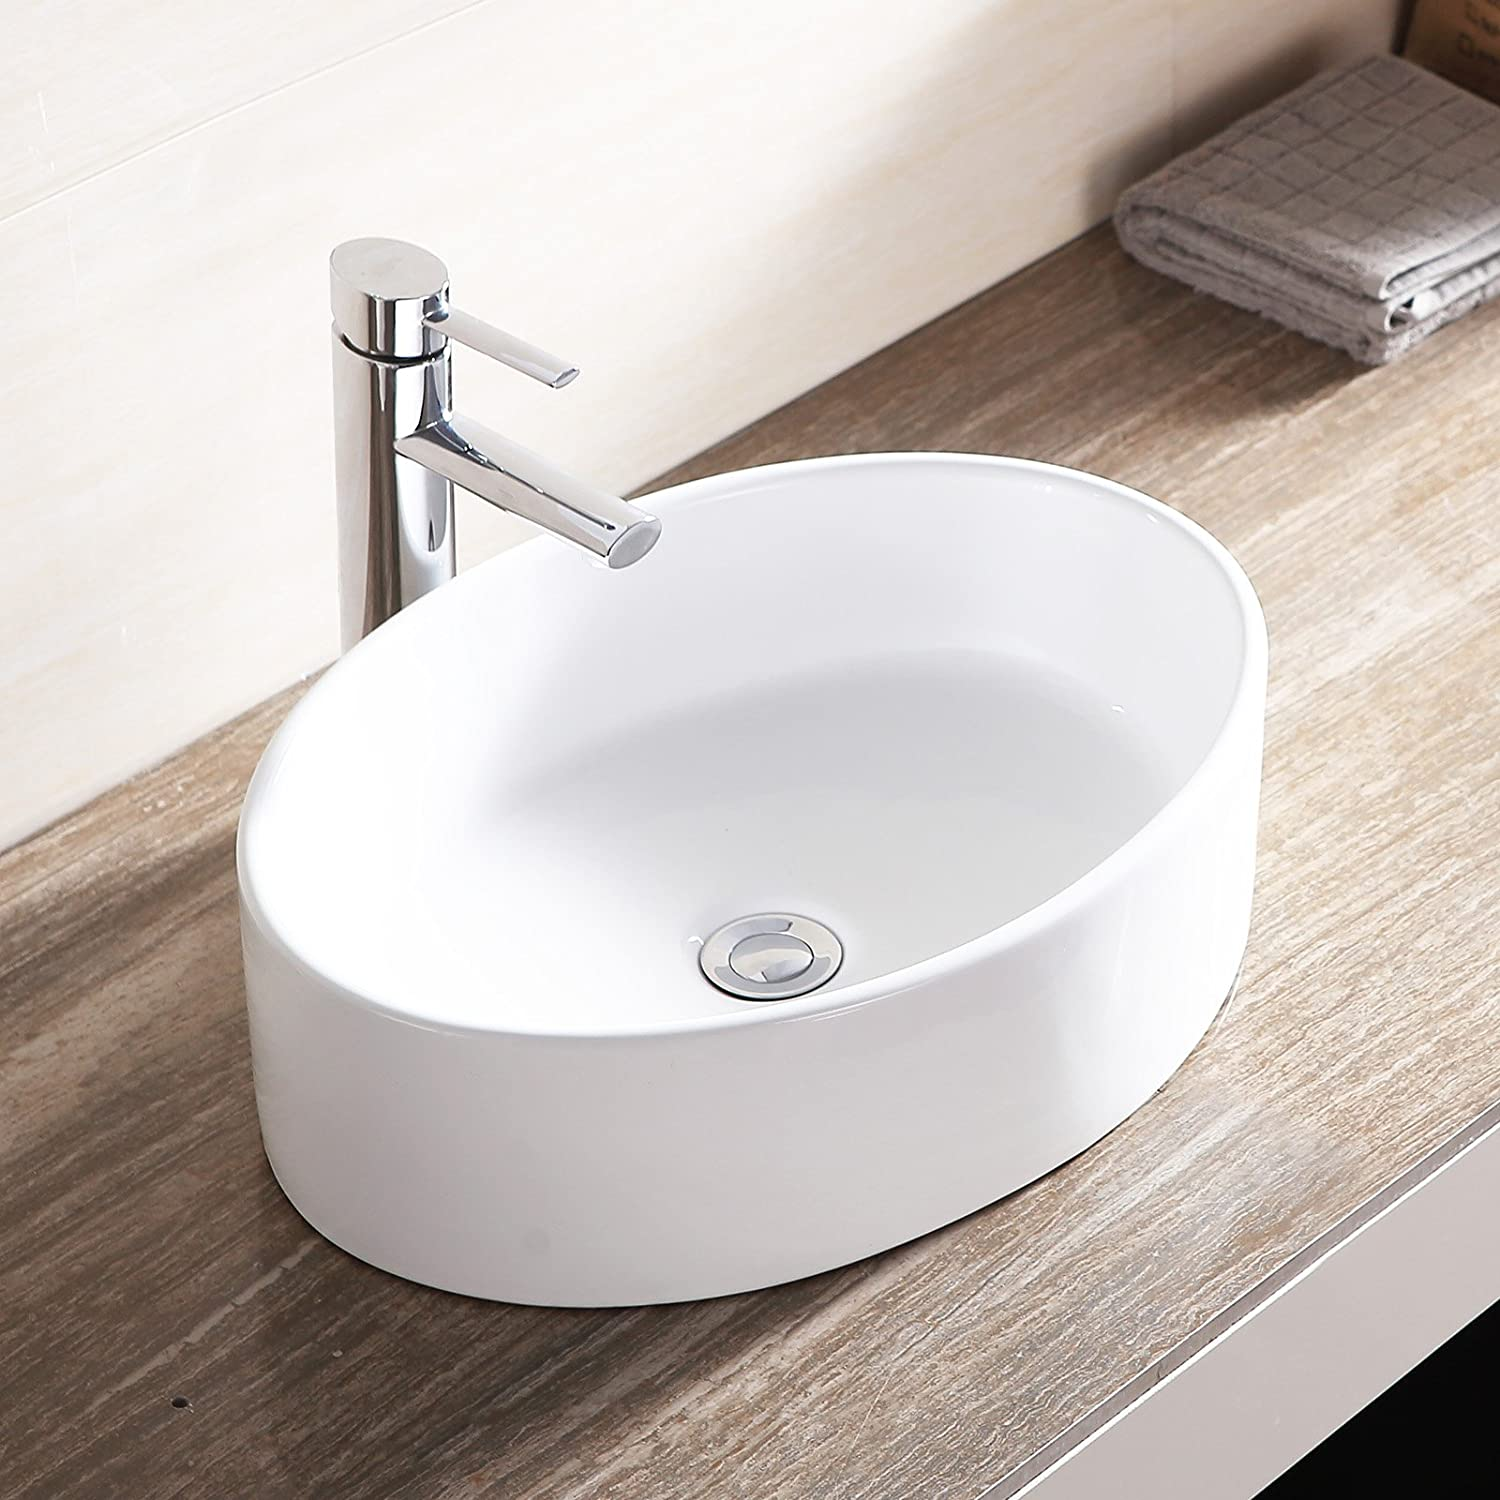 WaaGee Oval White Porcelain Bathroom Ceramic Vessel Sink Bowl Basin W/Pop  Up Drain     Amazon.com